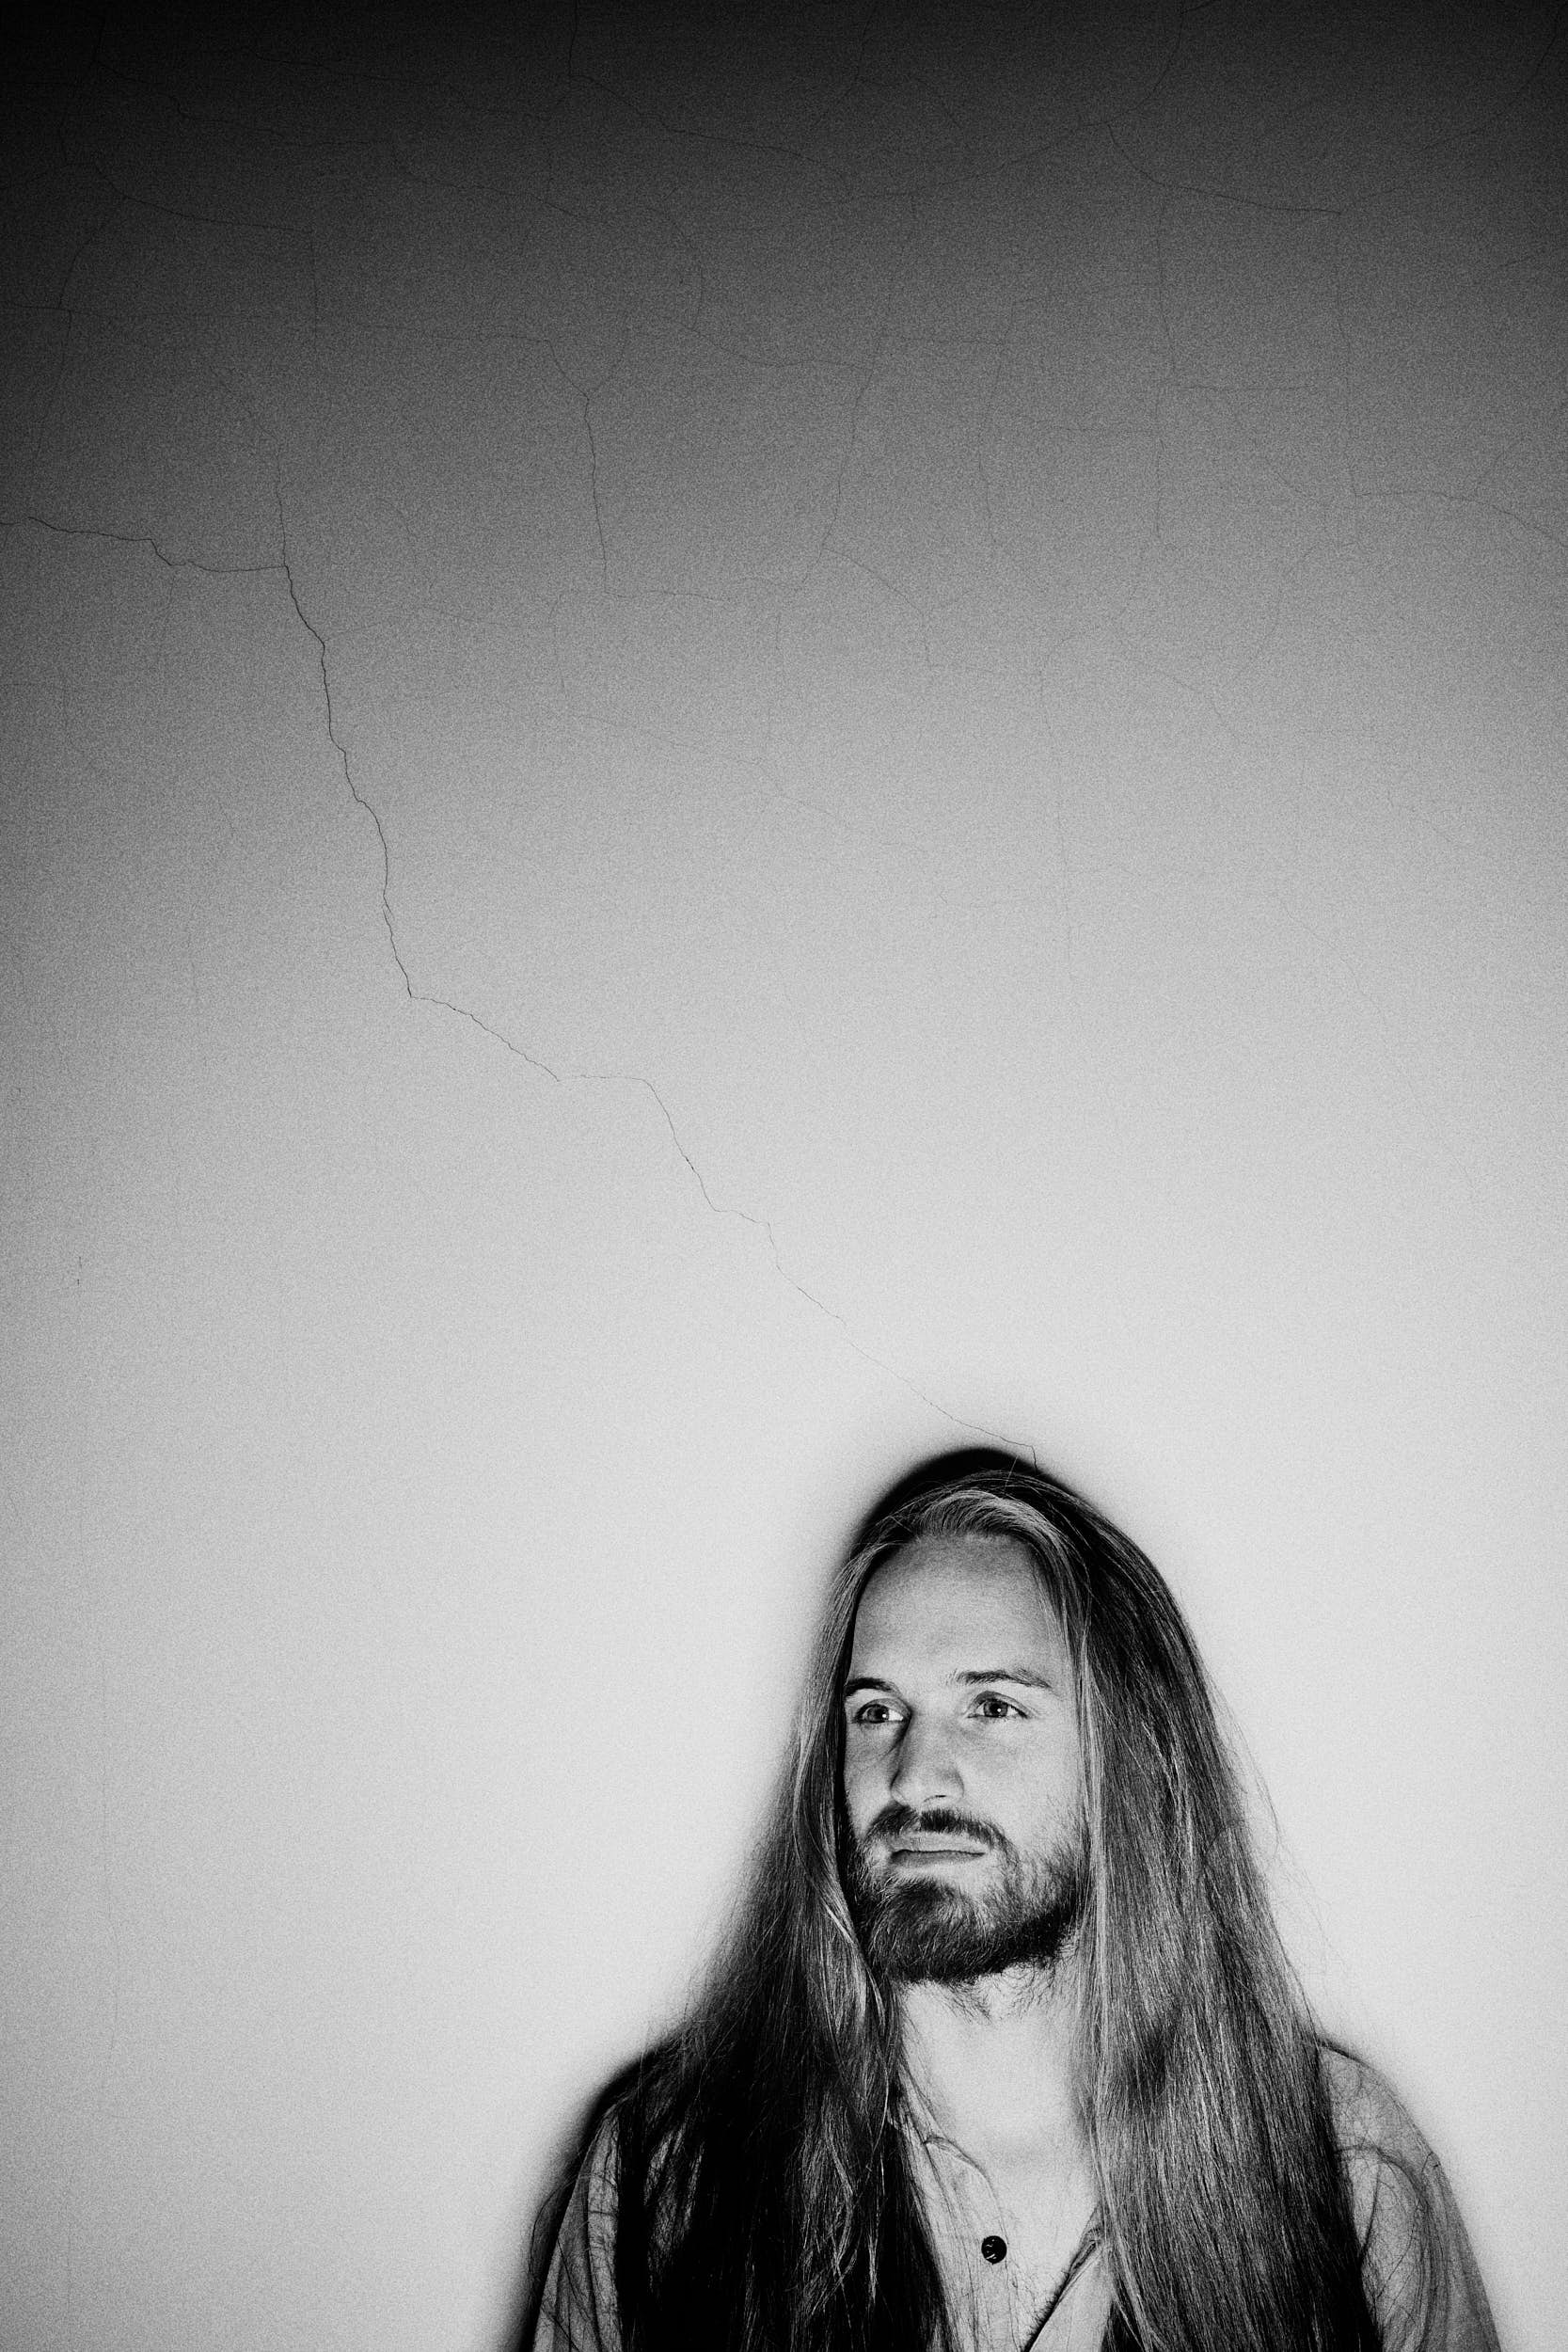 Black and white portrait of a man with long hair with a crack in the wall running across the image behind him.